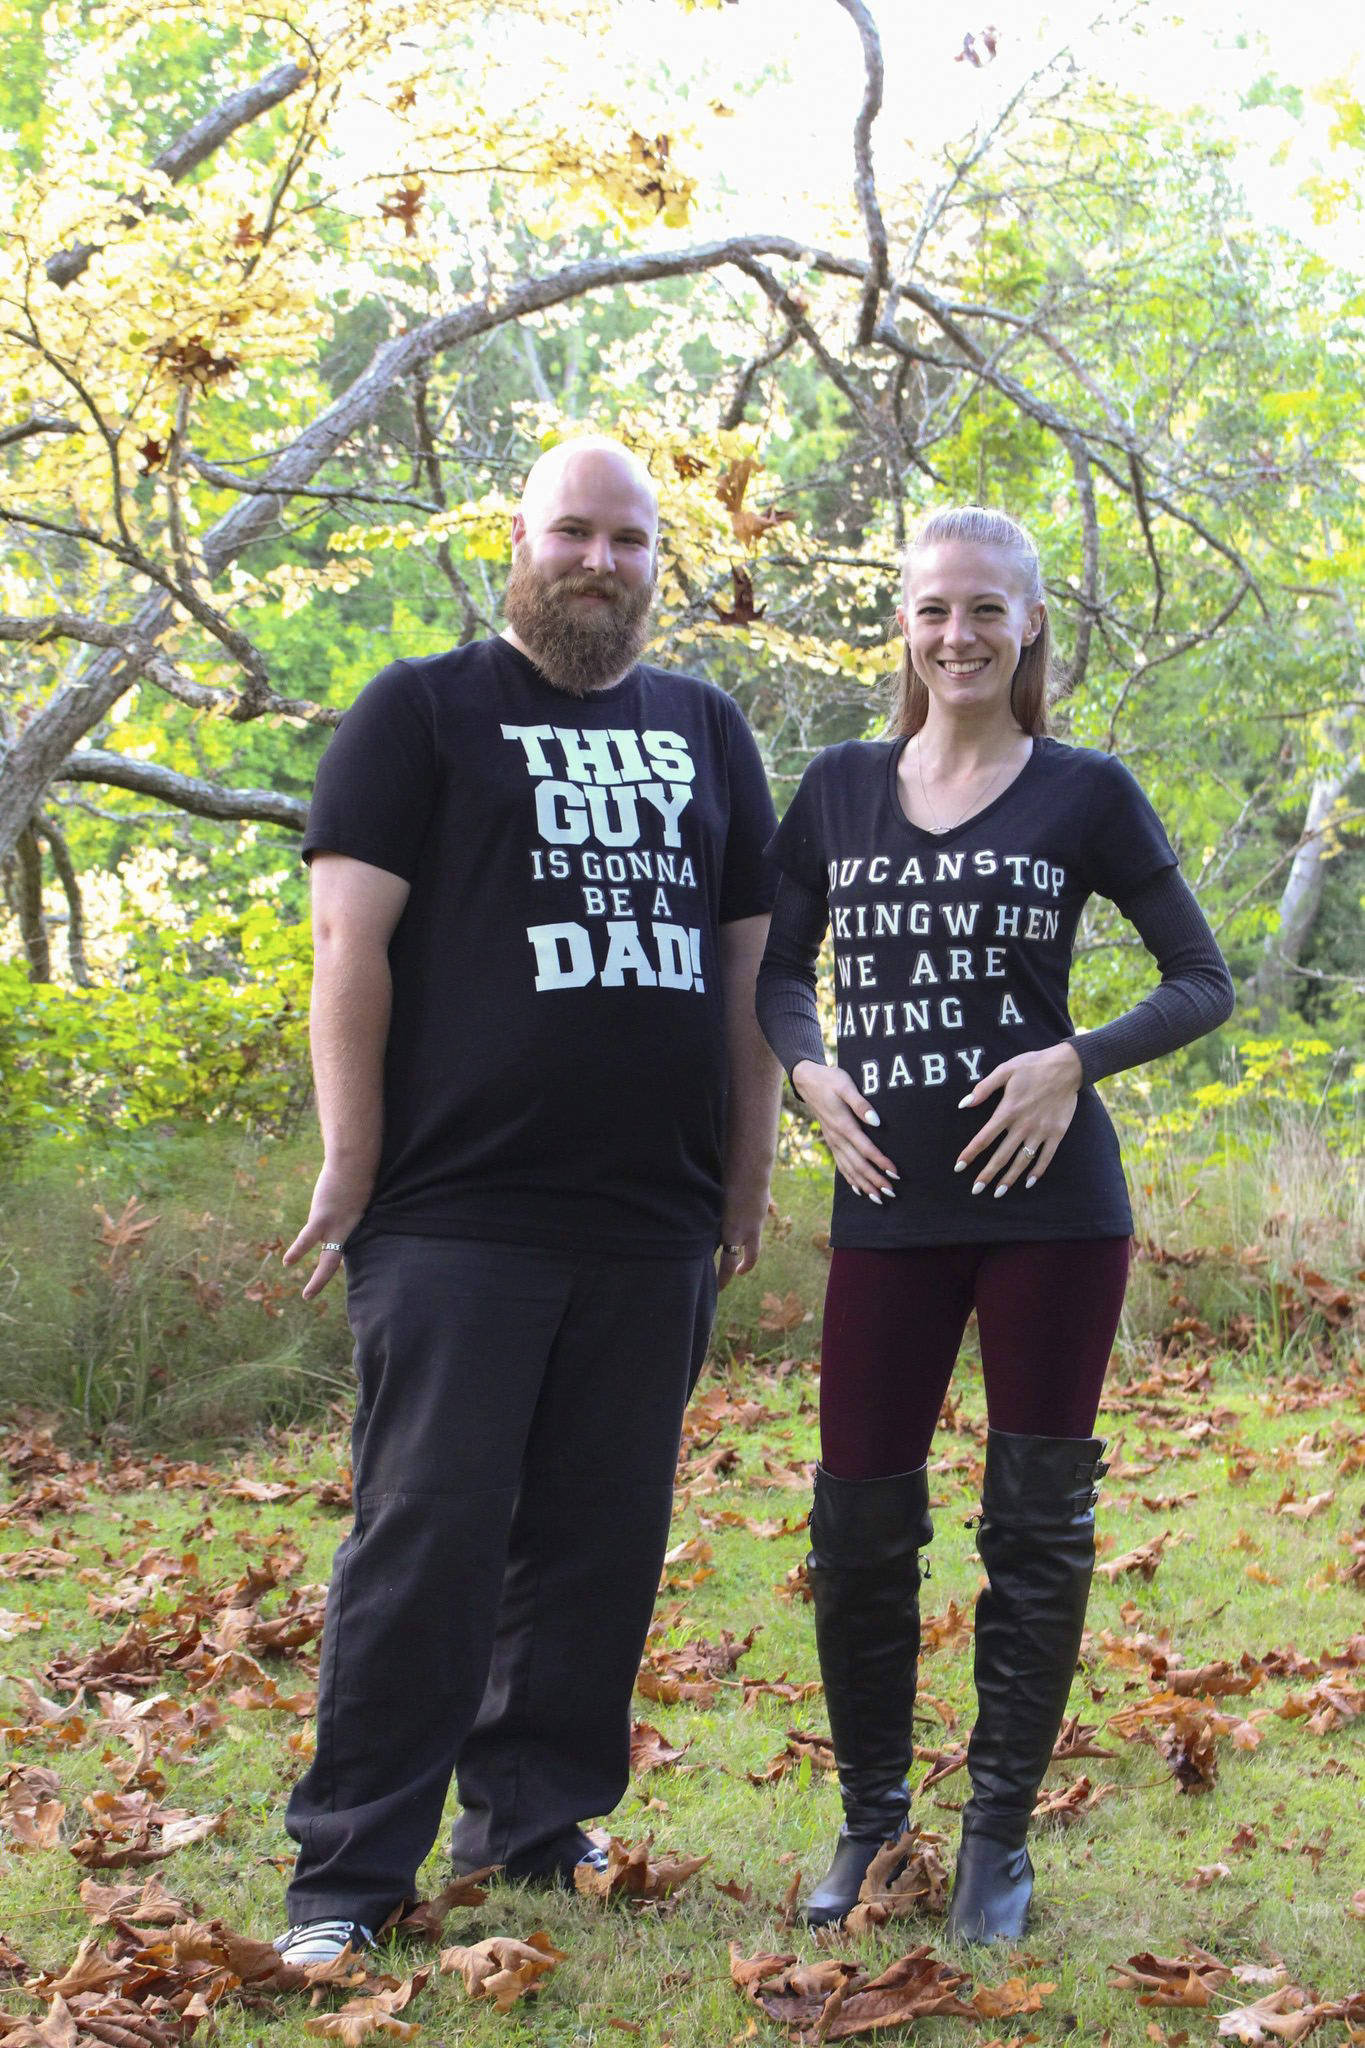 Samantha Kent and her husband celebrated 11 years together and found out they are pregnant. (Courtesy of Samantha Kent)